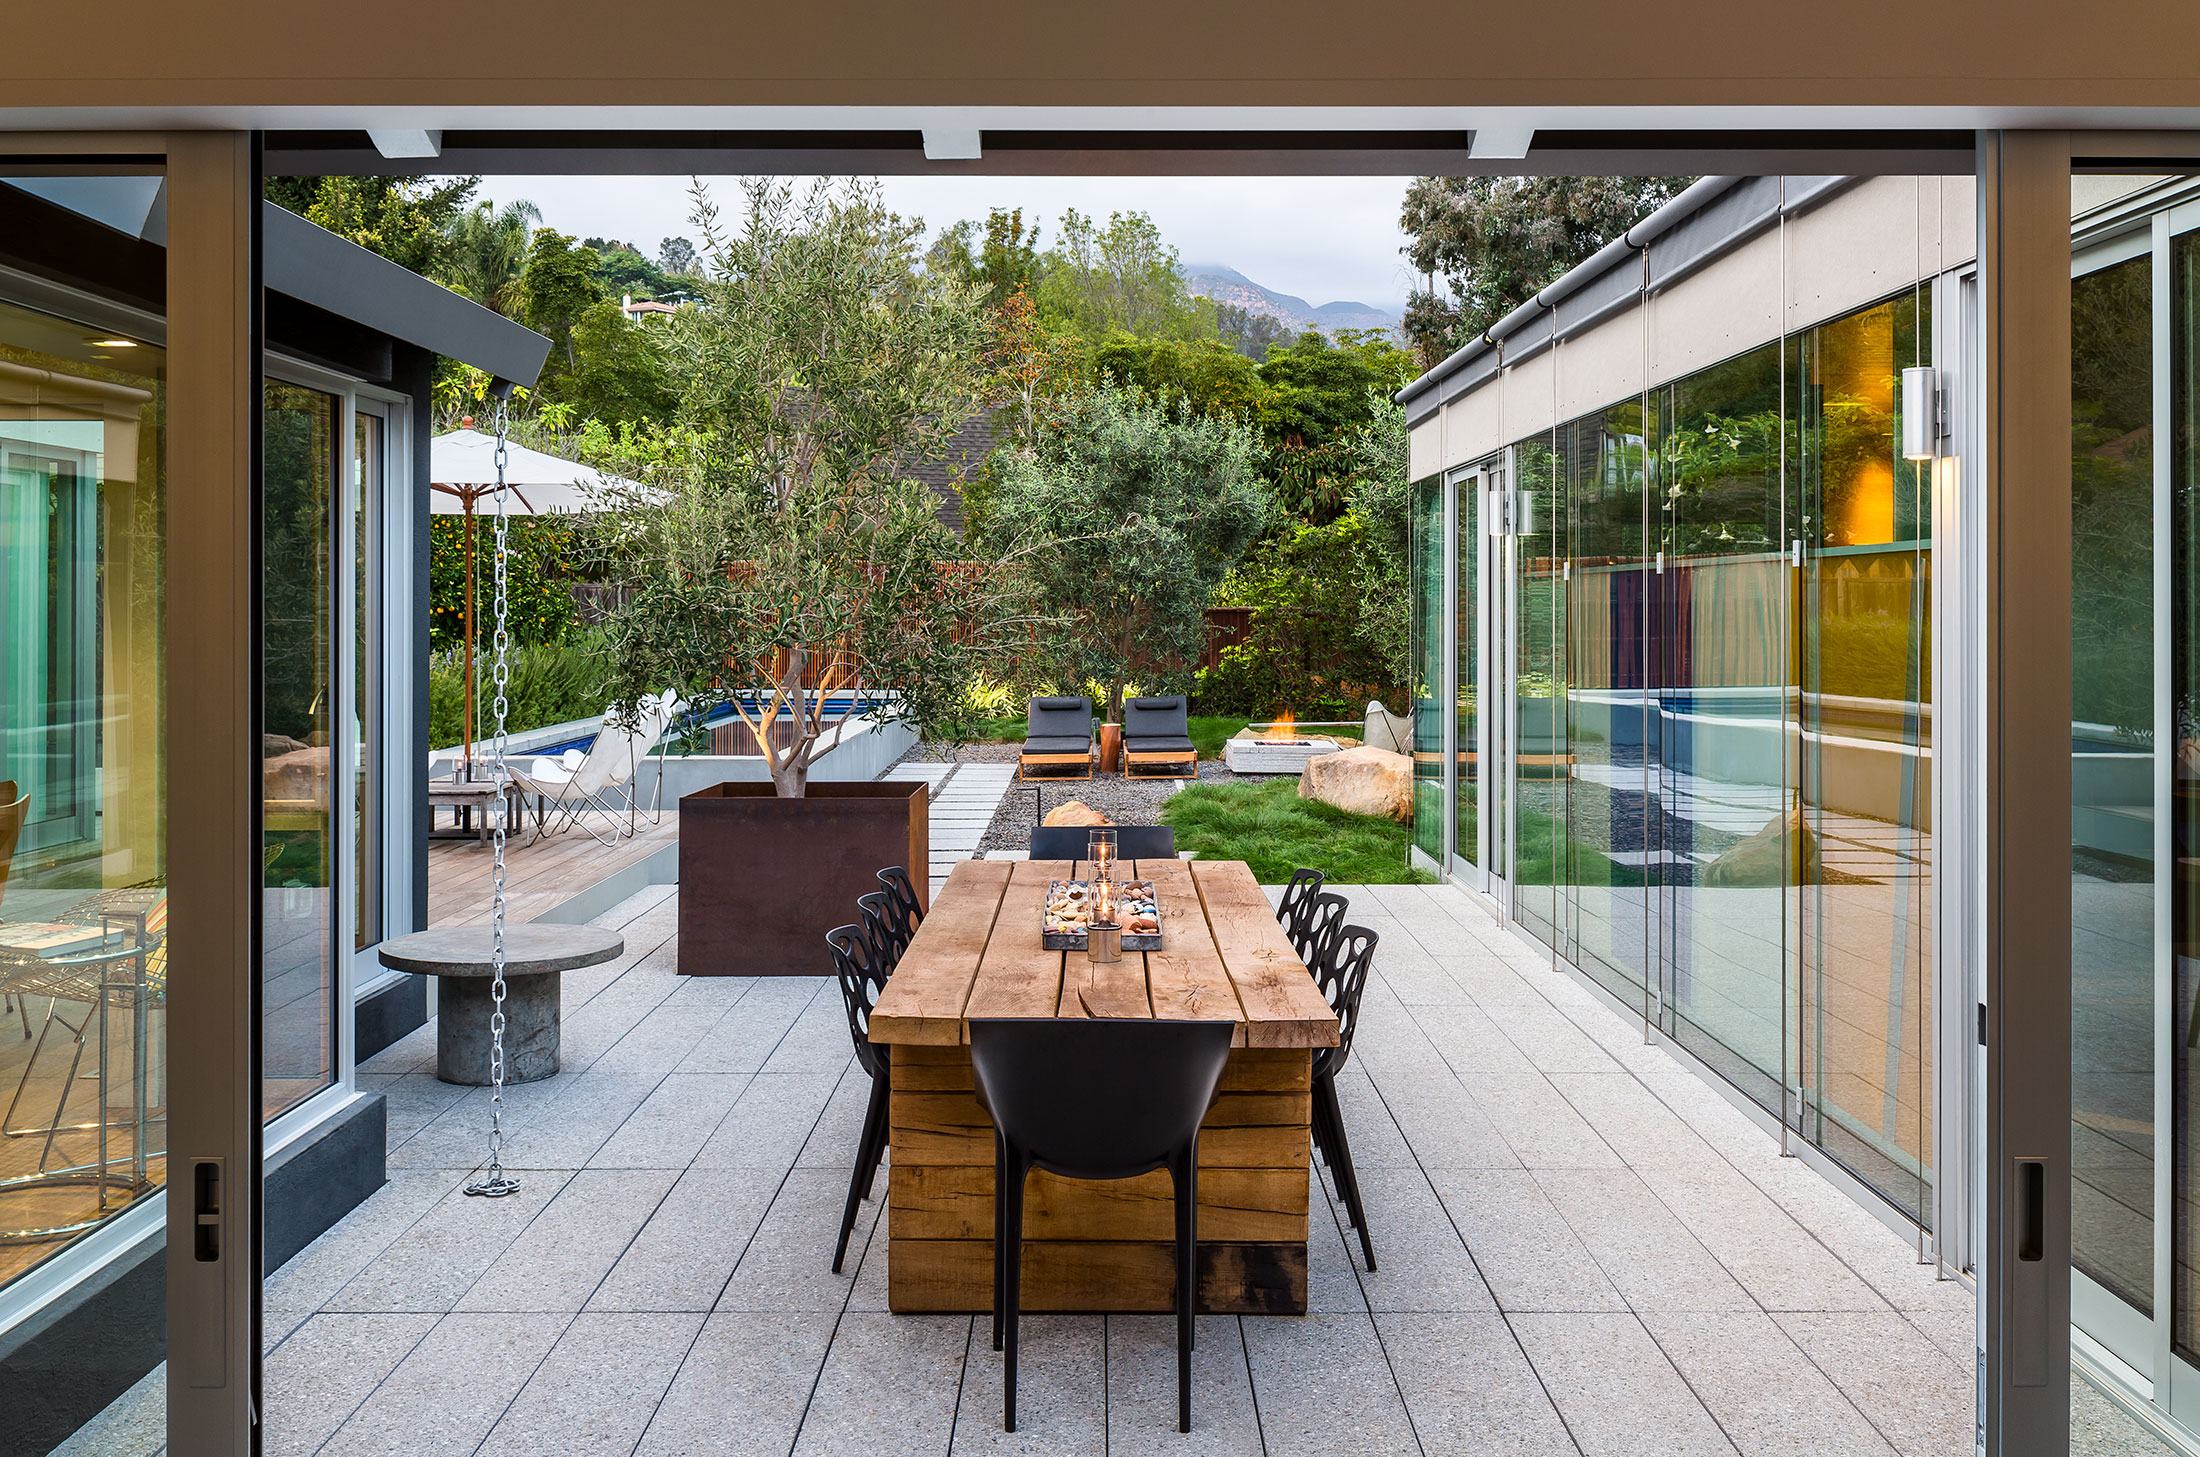 modern-remodel-architecture-residential-indoor-outdoor-california-shubindonaldson-cl20-2